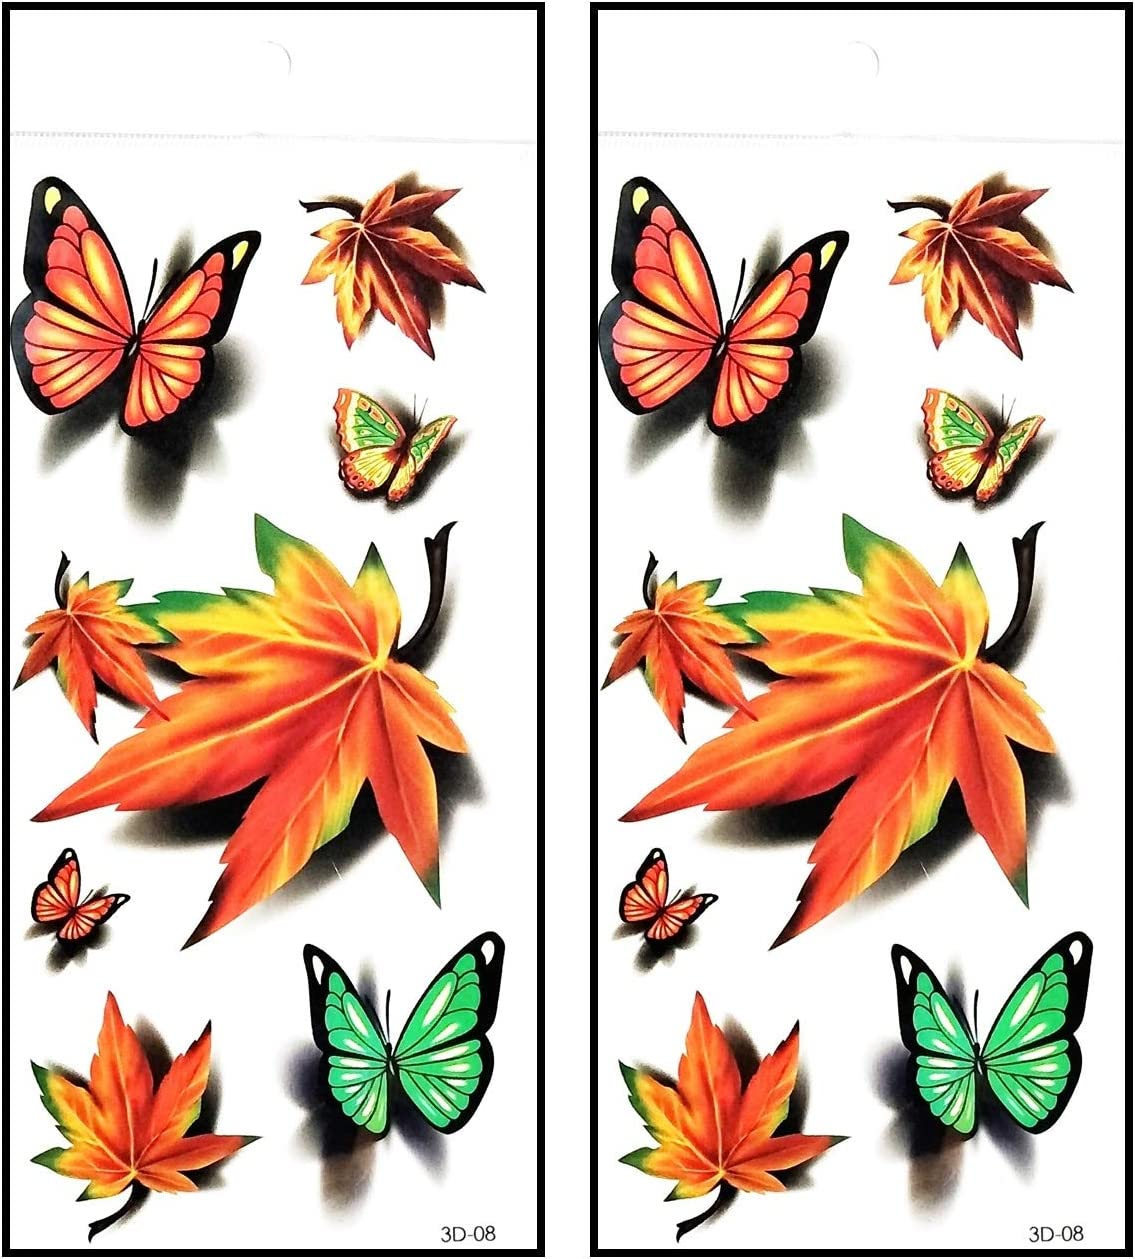 Amazon Com Tattoos 2 Sheets Orange Butterfly Leaves Tattoos Men Arm Tattoo Temporary Tattoos Party Sticker Fake Tatoo Body Art Waterproof 3d Style Fashion Fantasy Arts Crafts Sewing